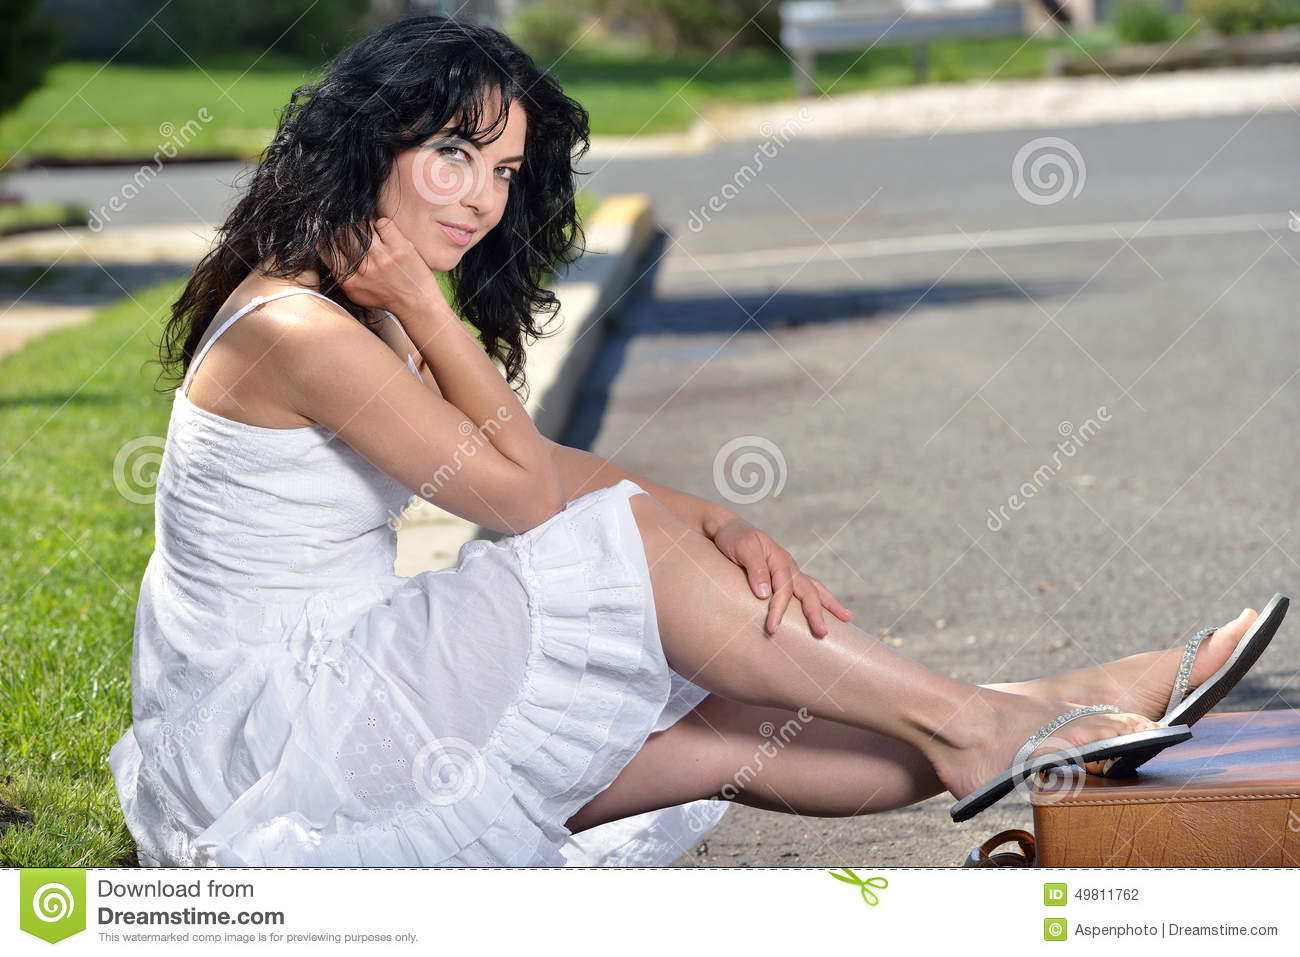 attractive woman sits on curb stock photo - image of trip, female